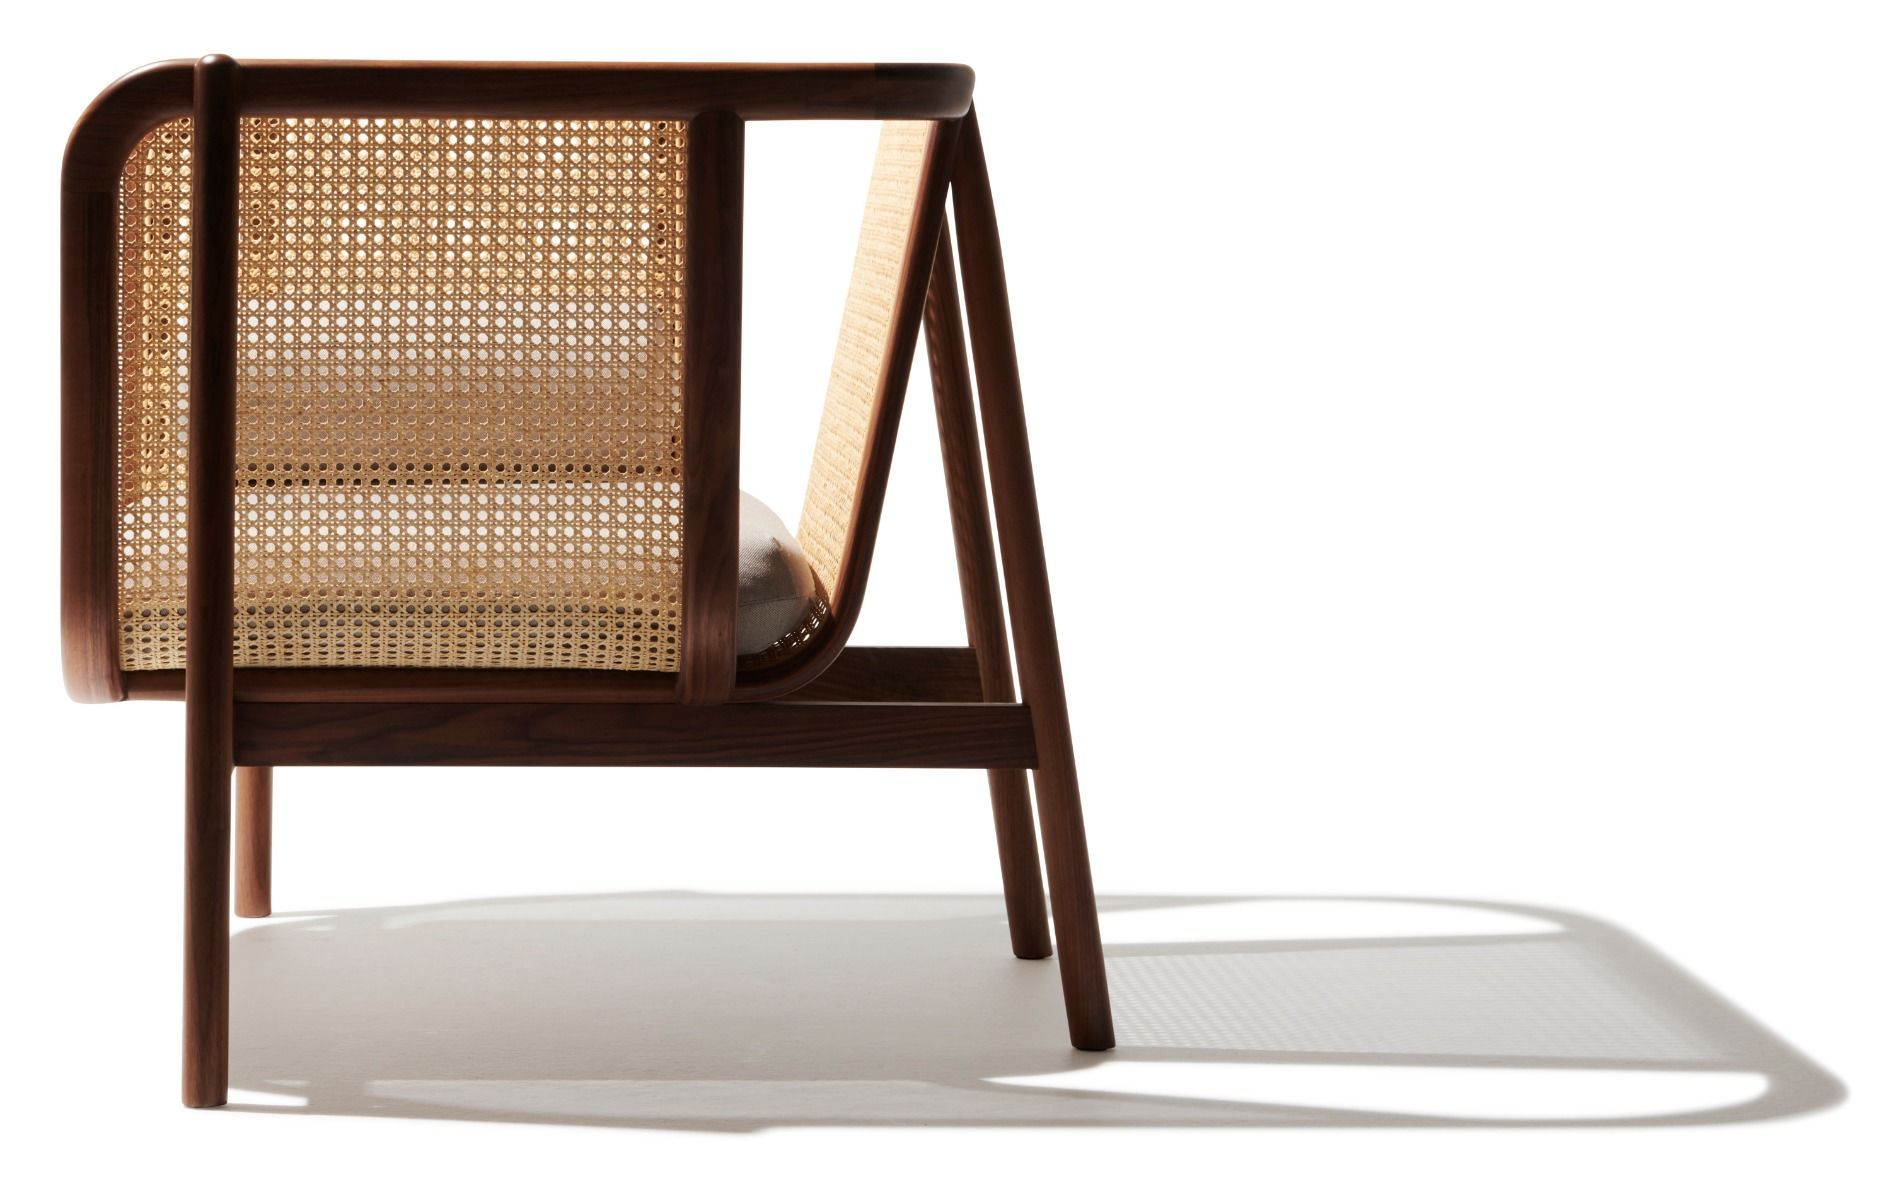 Hem Lounge Chair In 2020 Wood Lounge Chair Arm Chairs Living Room Modern Interior Design